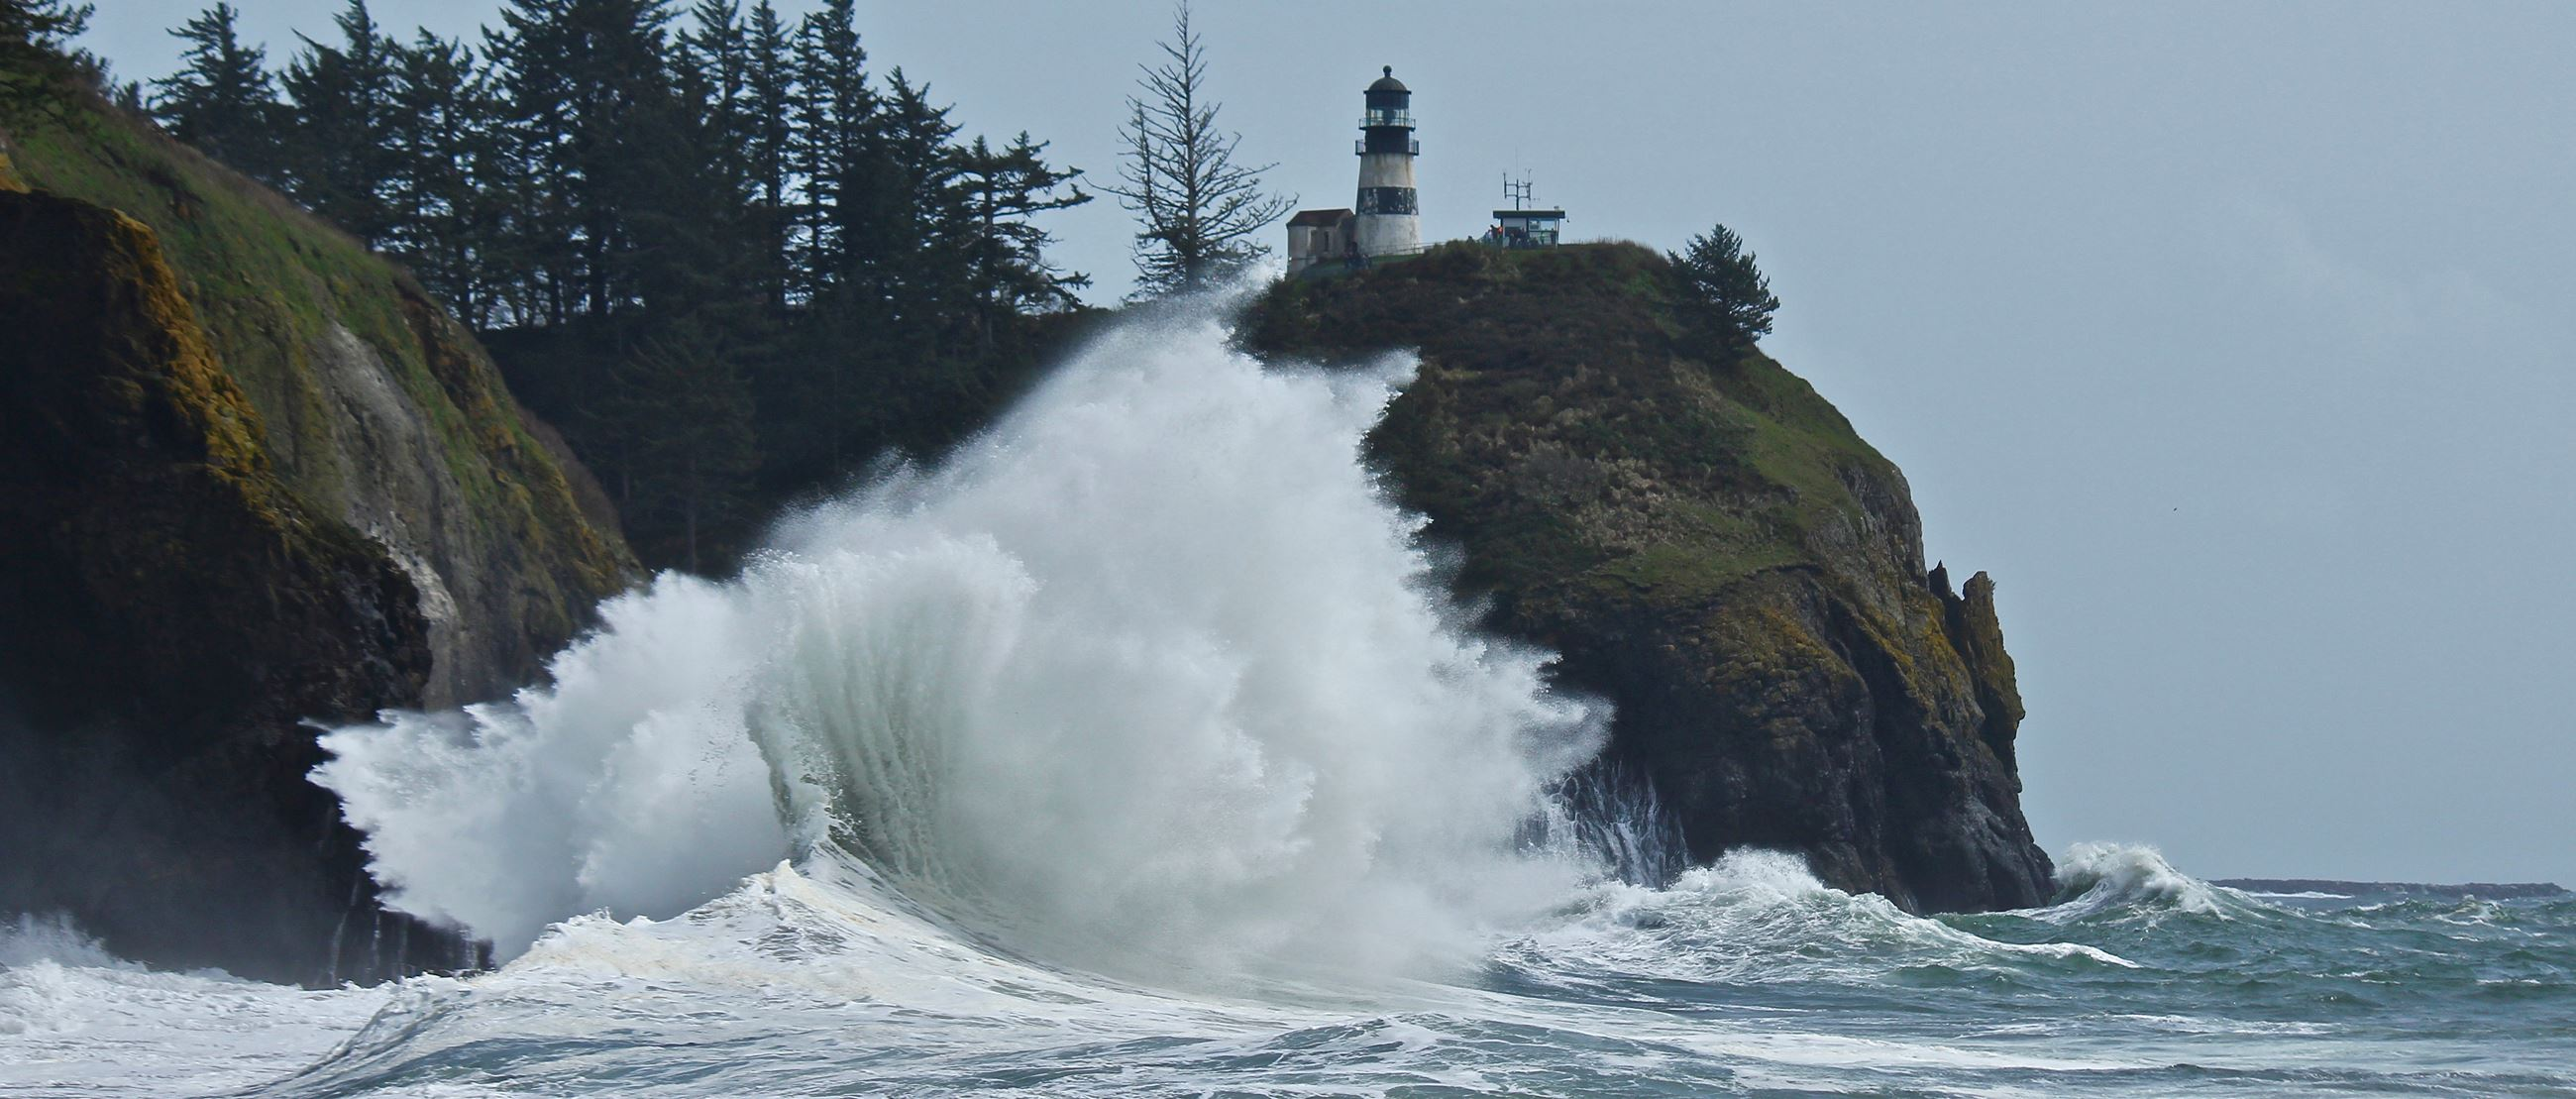 Waves crash dramatically against the cliffs at Cape Disappointment State Park